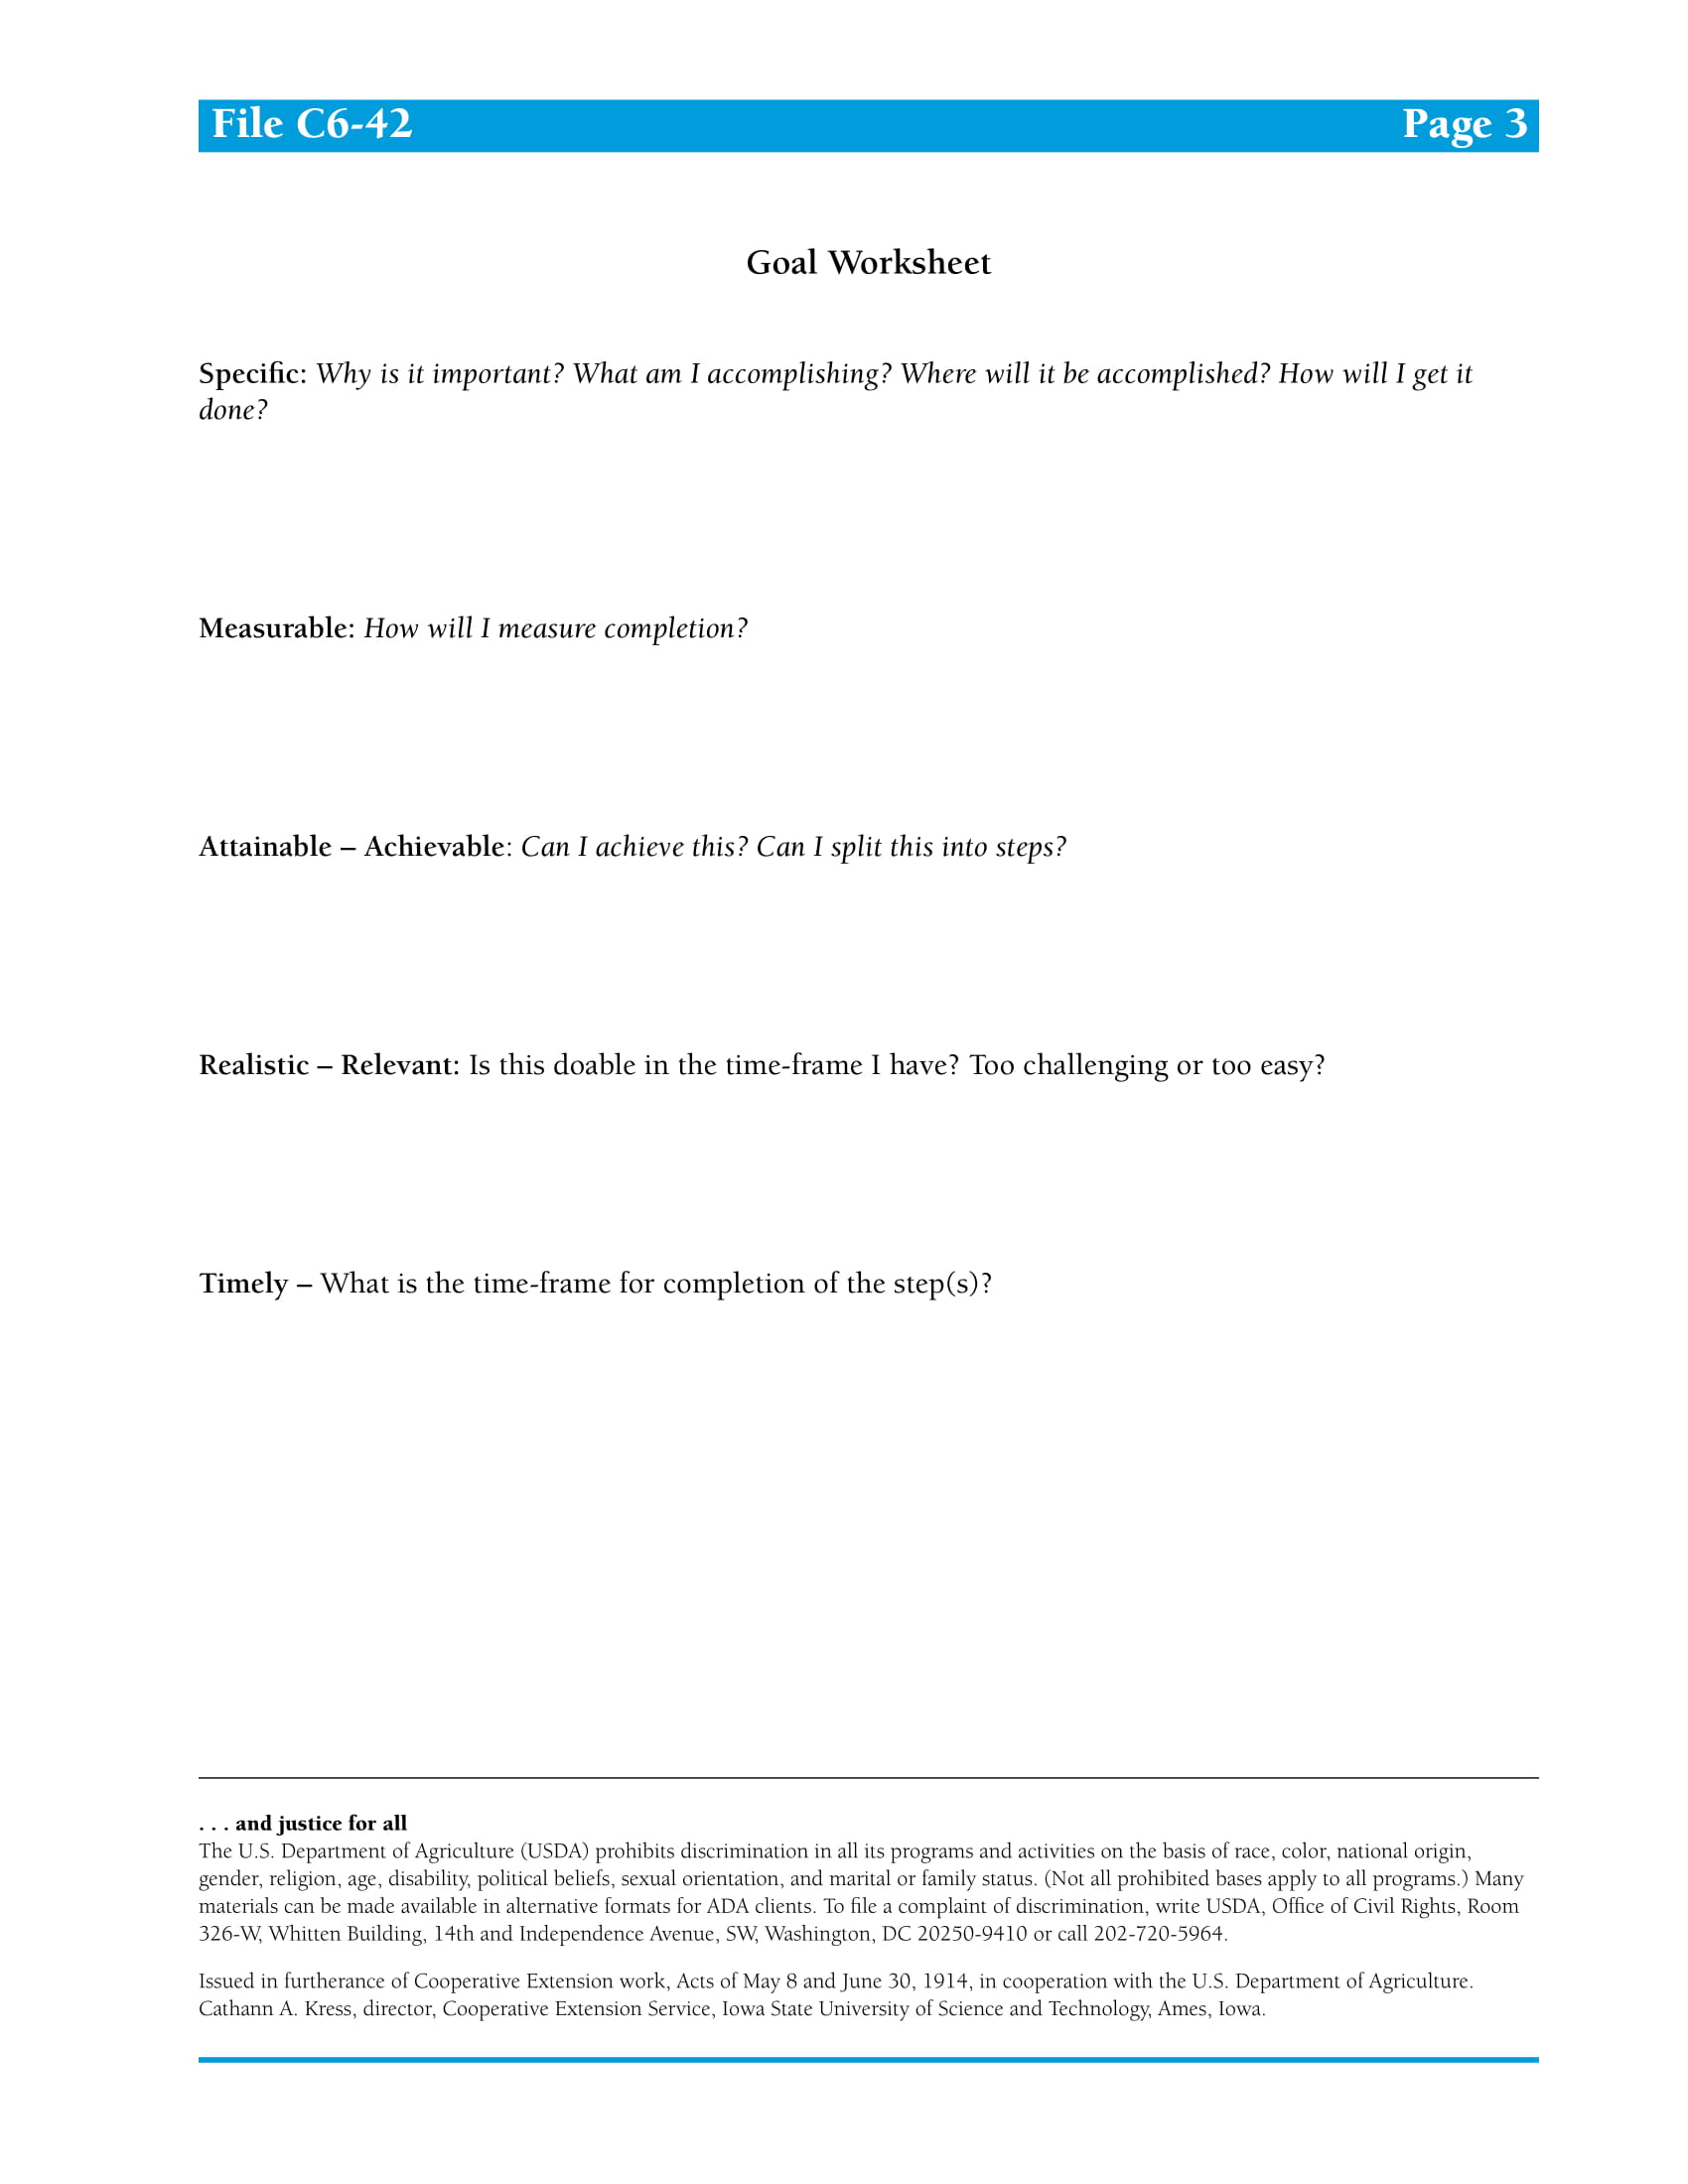 goal worksheet example